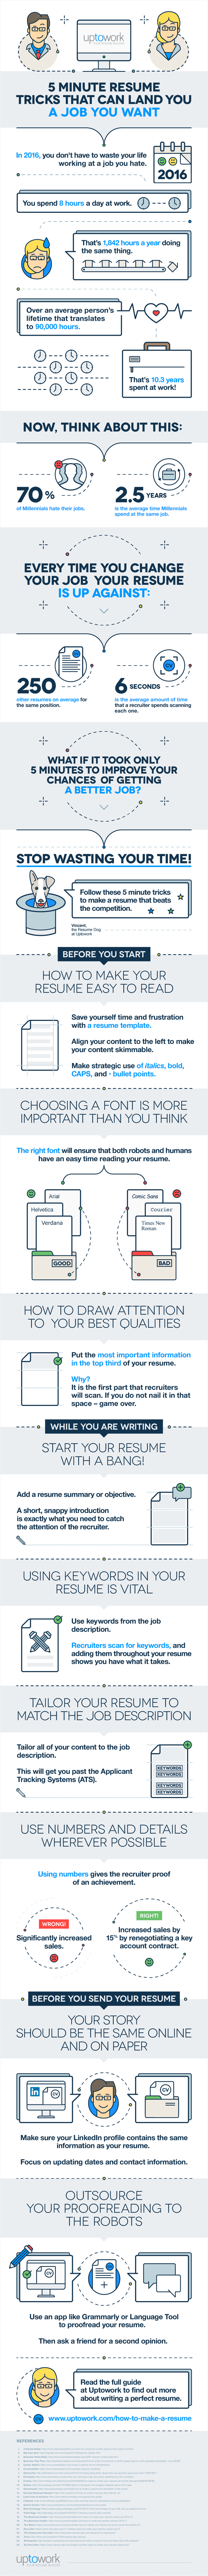 7 tips on how to write a resume that grabs recruiters attention infographic